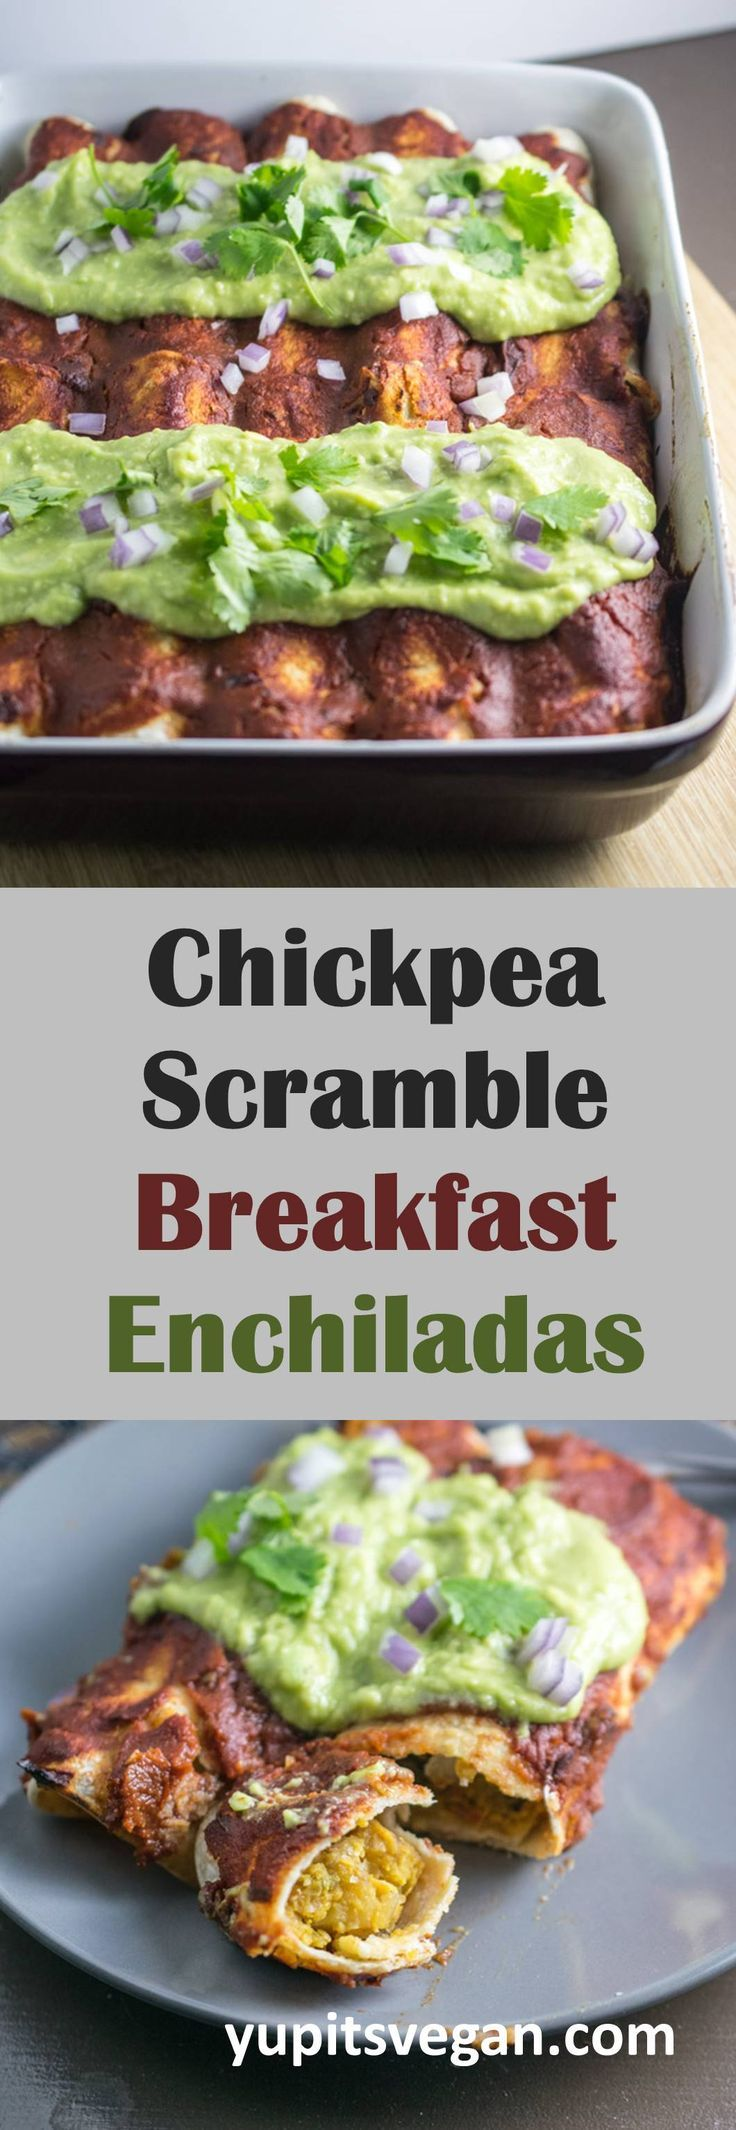 Chickpea Scramble Breakfast Enchiladas with Chipotle Sauce | Yup, it's Vegan. Hearty enchiladas stuffed with potatoes, peppers, and chickpea scramble, smothered in chipotle sauce, and topped with avocado crema. #vegan #glutenfree #enchiladas